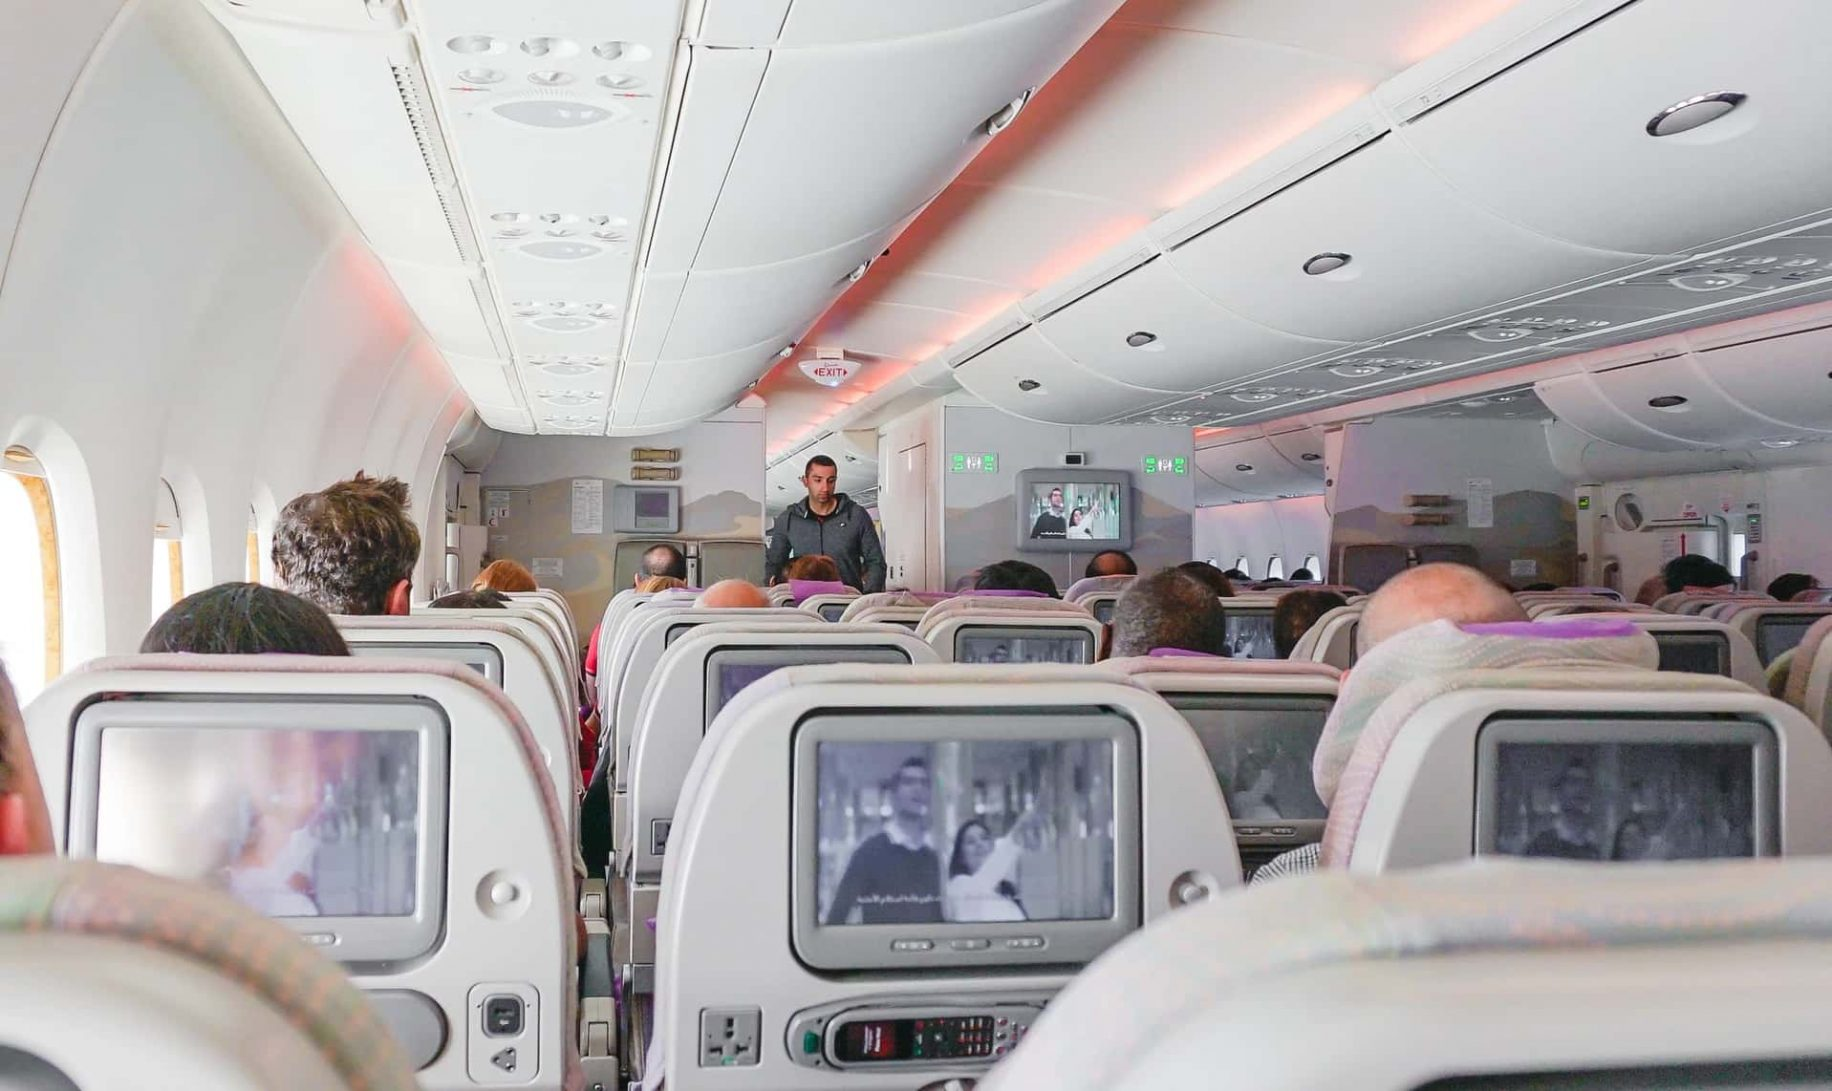 plane tv screens with camera spying on you